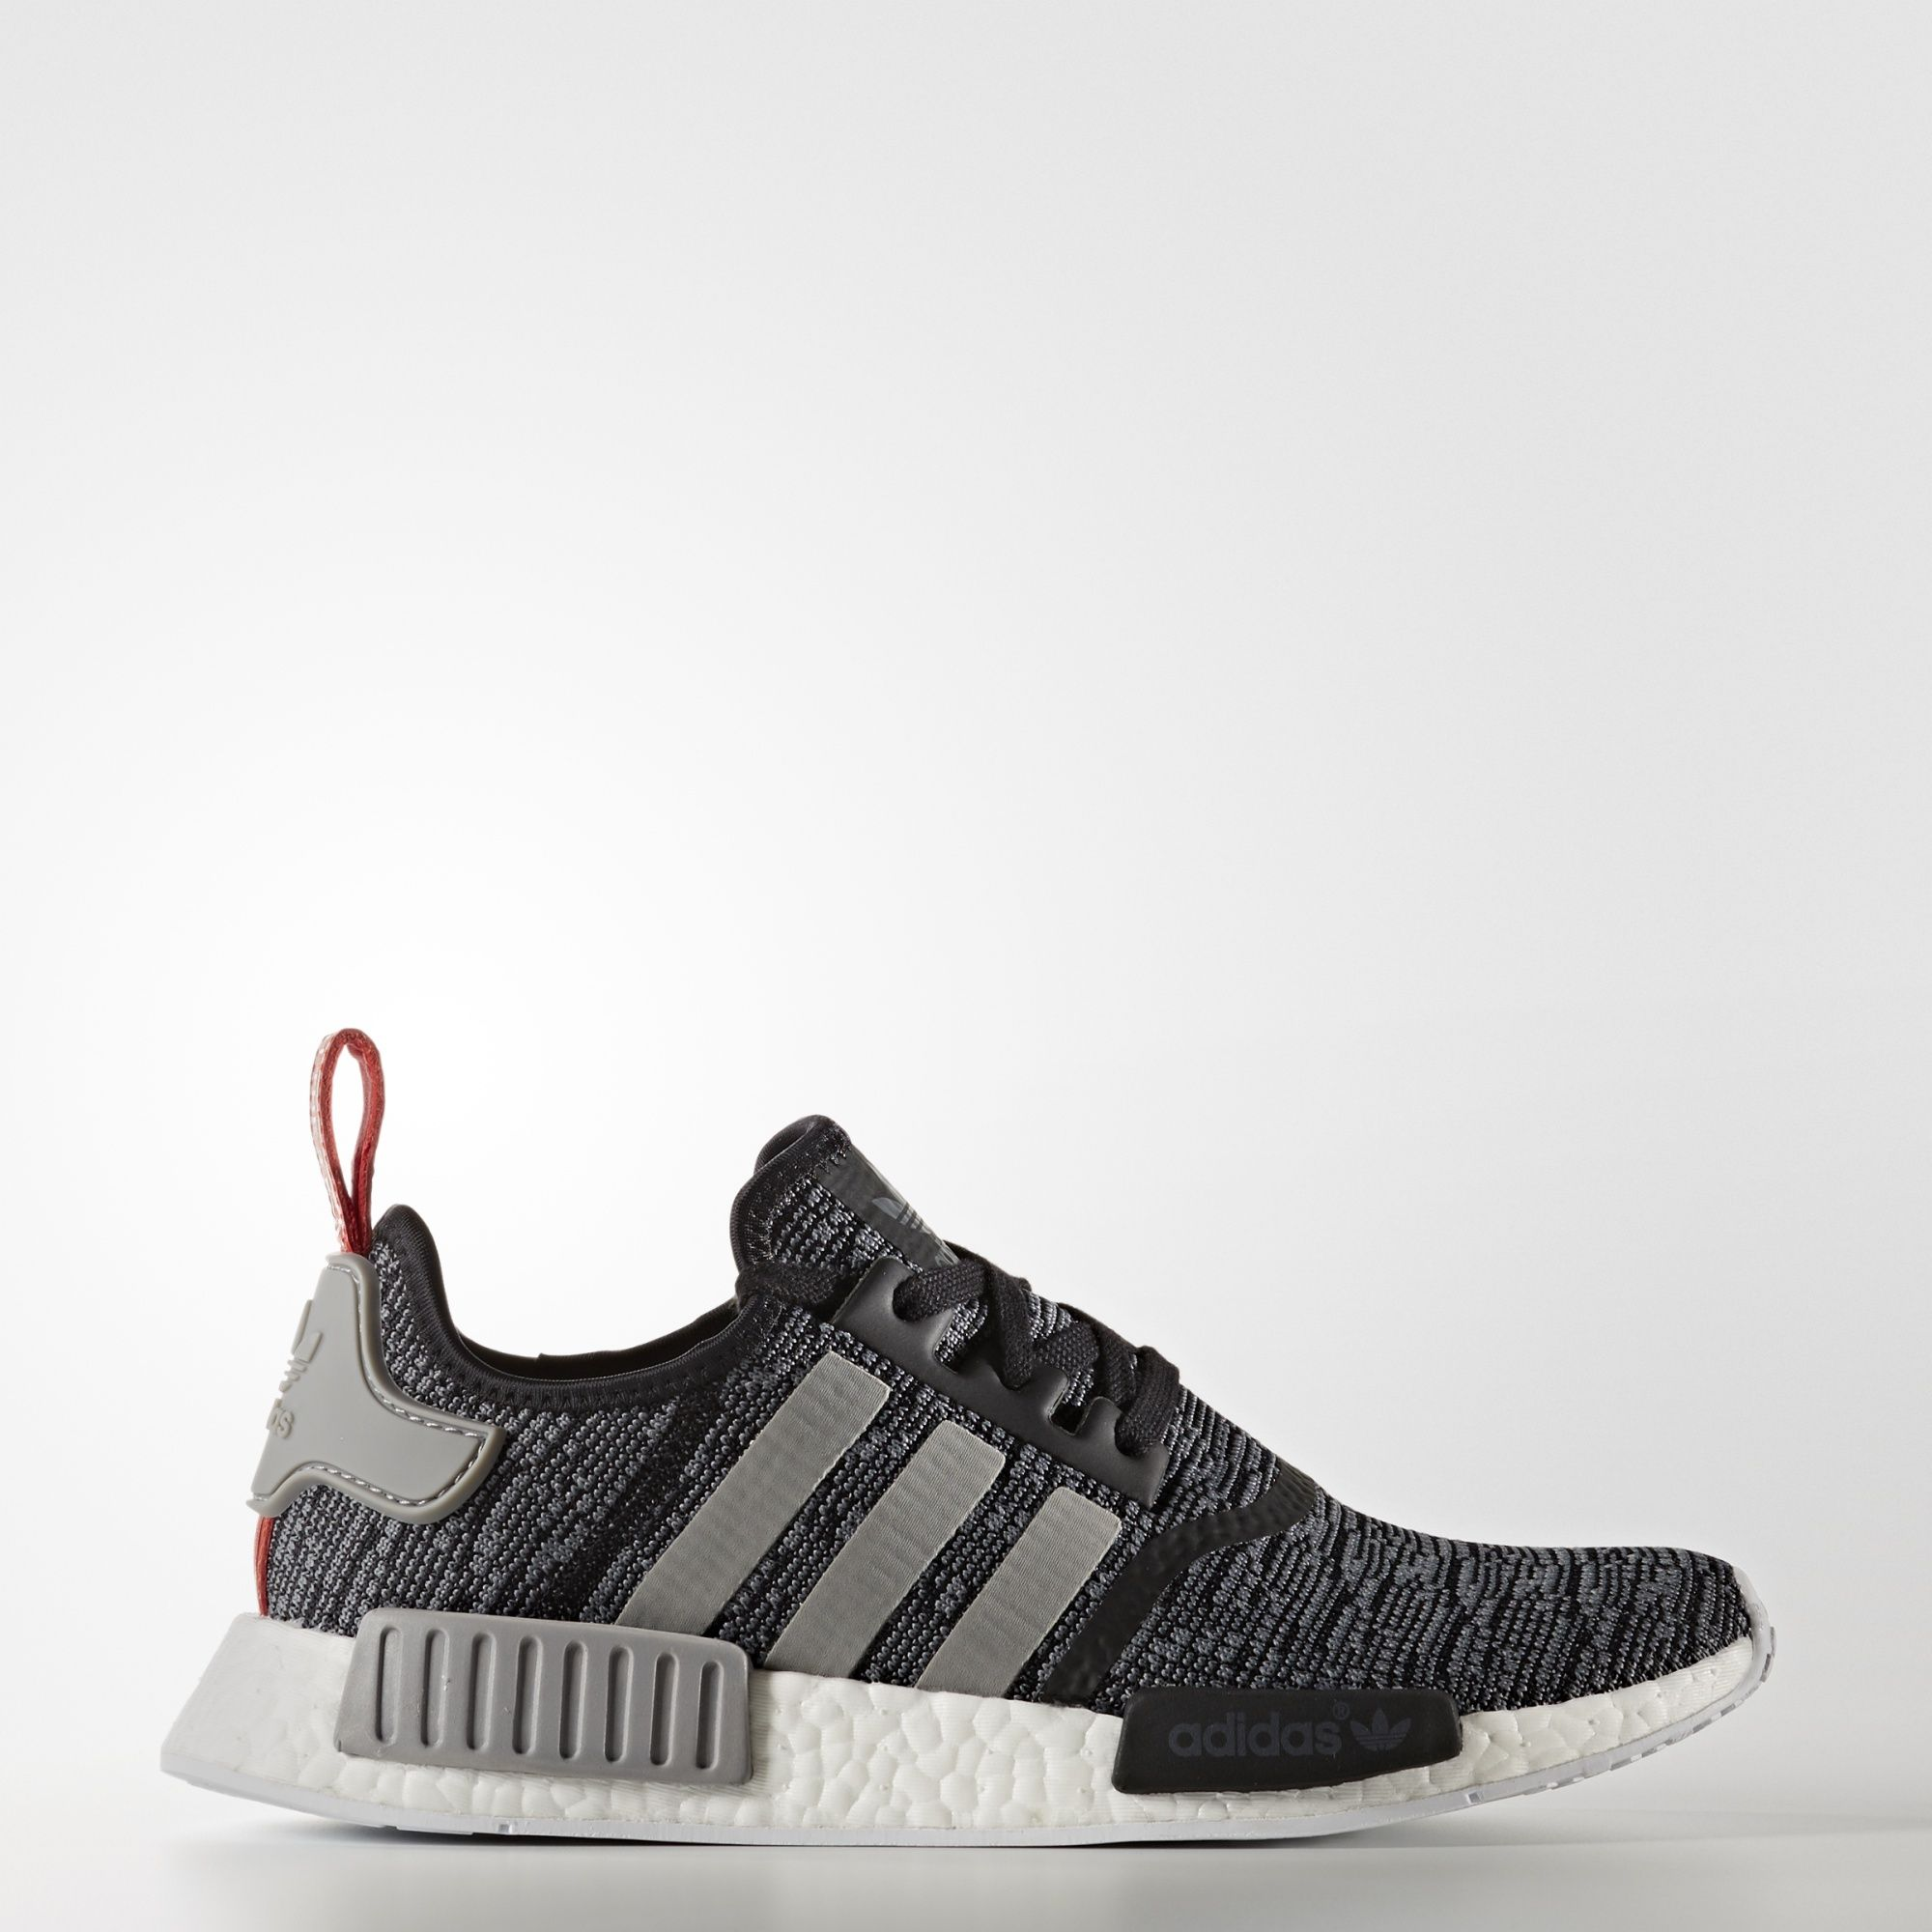 adidas NMD_R1. 130 Camo fashion, Popular sneakers